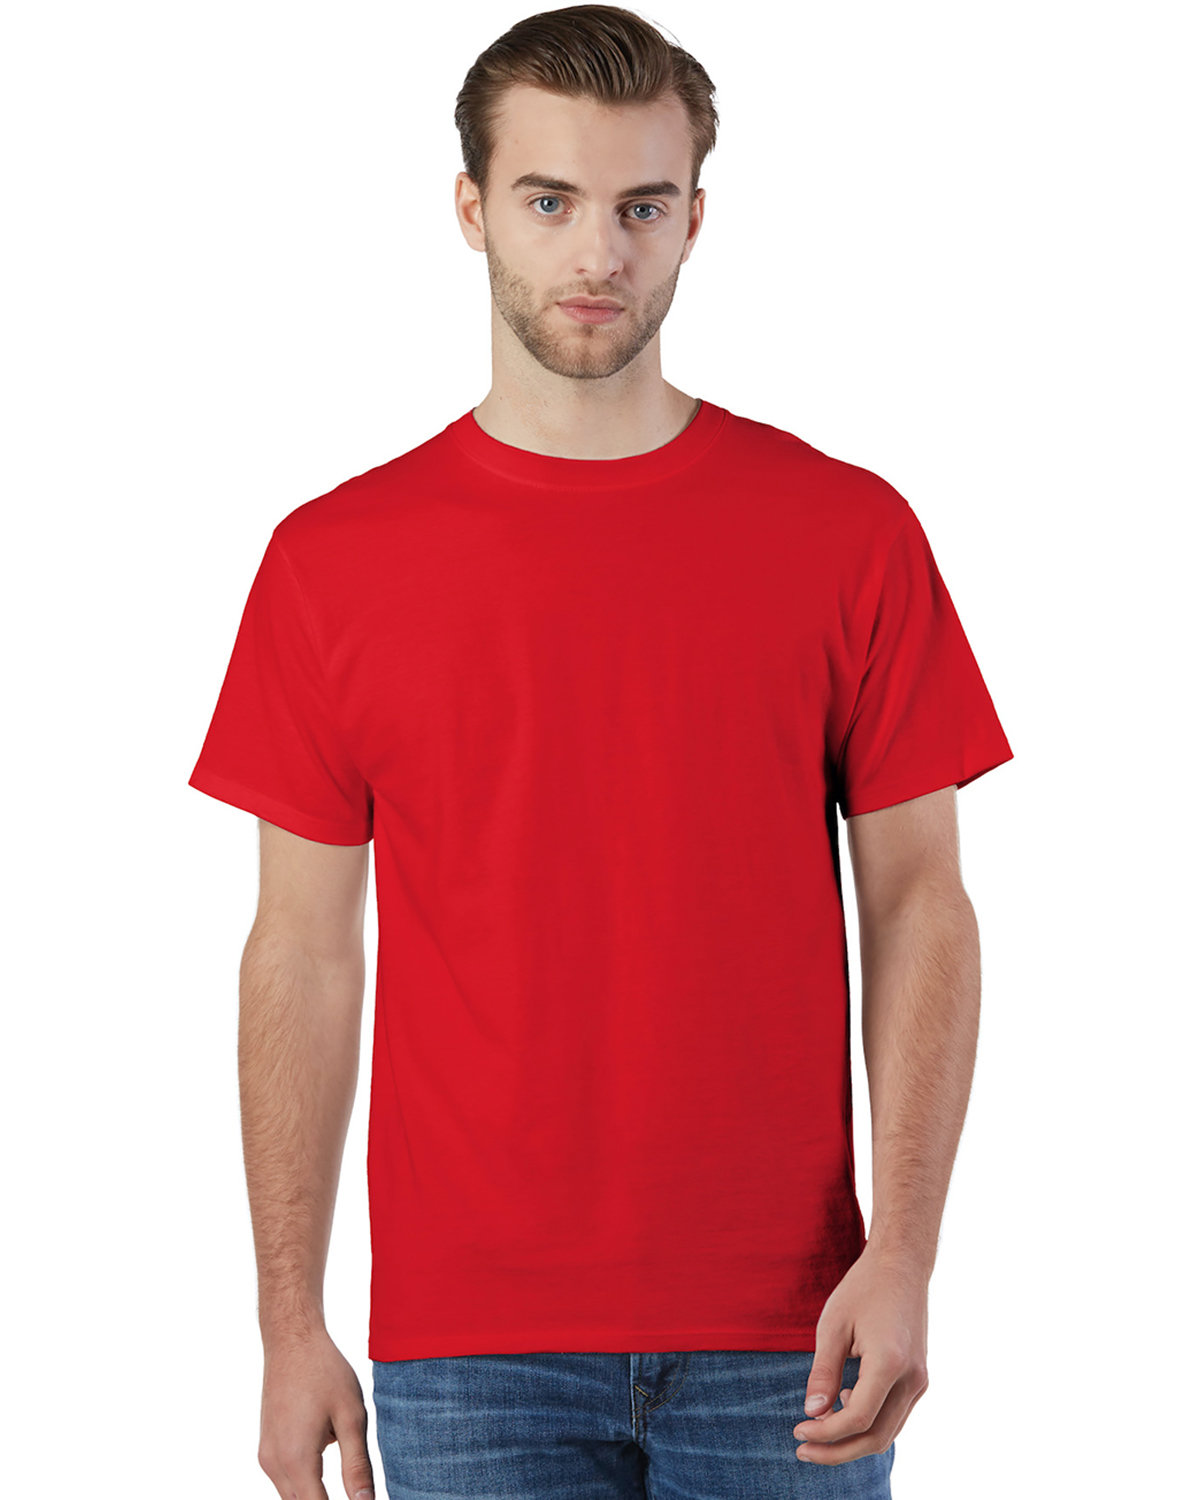 Champion Adult Ringspun Cotton T-Shirt ATHLETIC RED